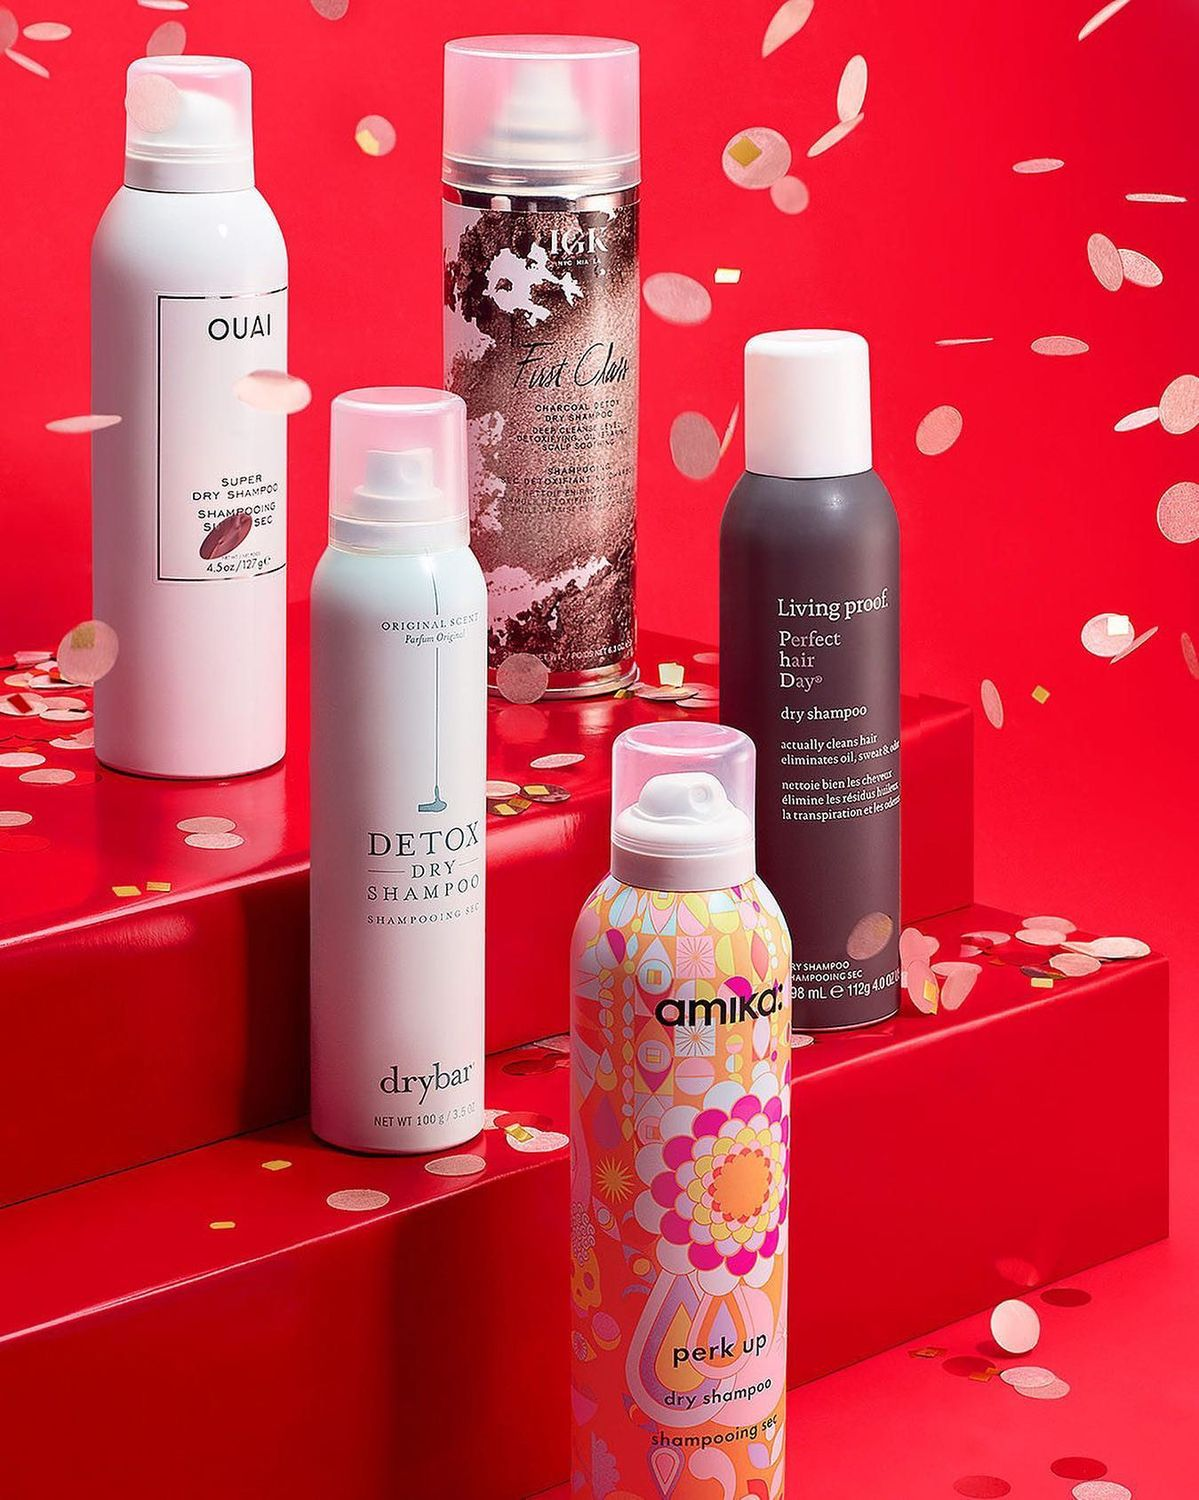 Verified These blowout savers will keep your style fresh, so you can ice one more cookie, wrap one more present, and attend one more last-minute holiday soiree without touching your hair-dryer. Leave a 💁🏽♀️💁🏻♀️💁🏿♀️ below if you're rockin' second, third, or fourth day hair rn. … @theouai @igkhair @thedrybar @livingproofinc @amika